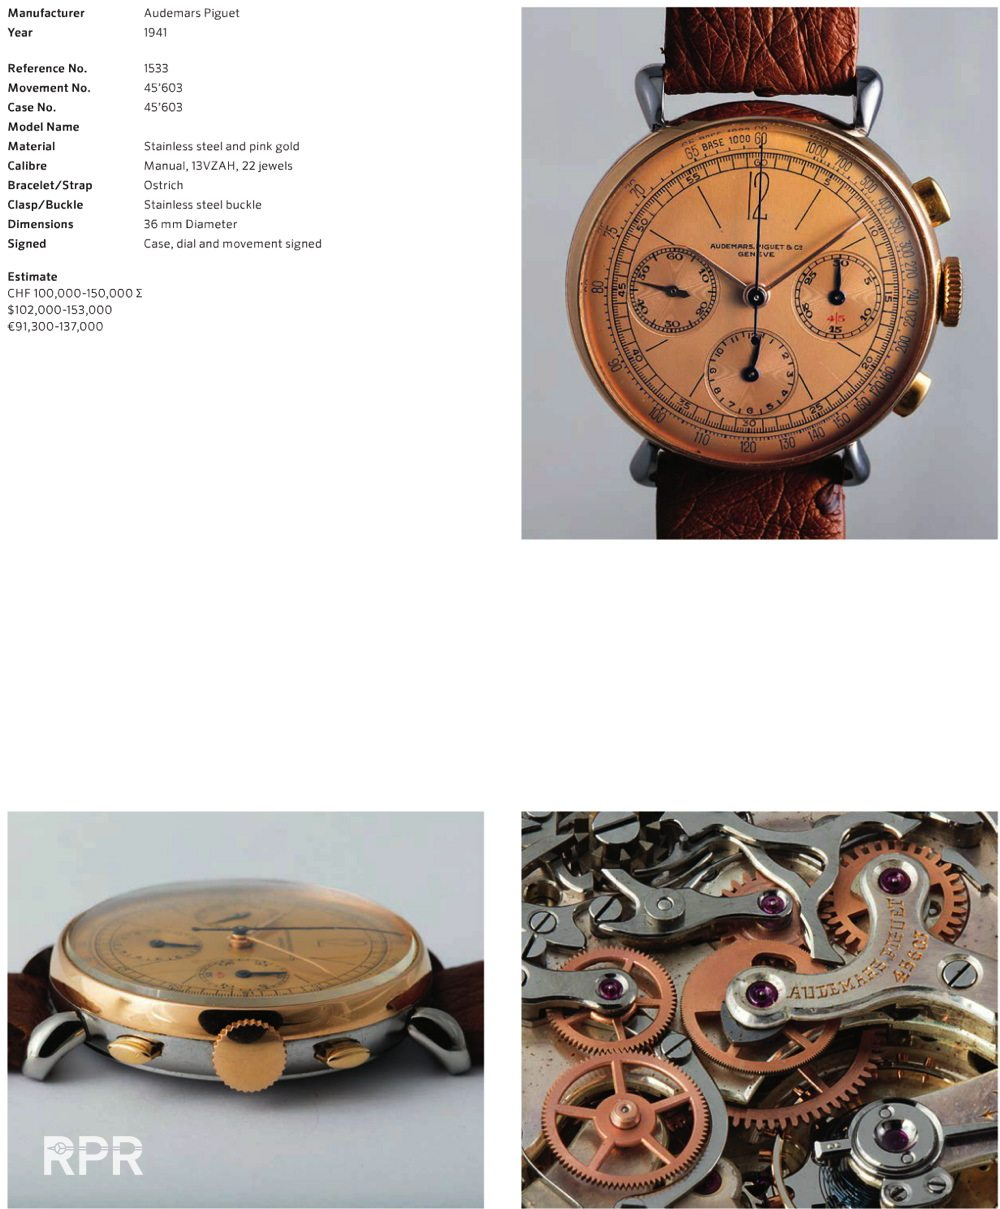 RPR_Rolex_geneva_auction_2015_29